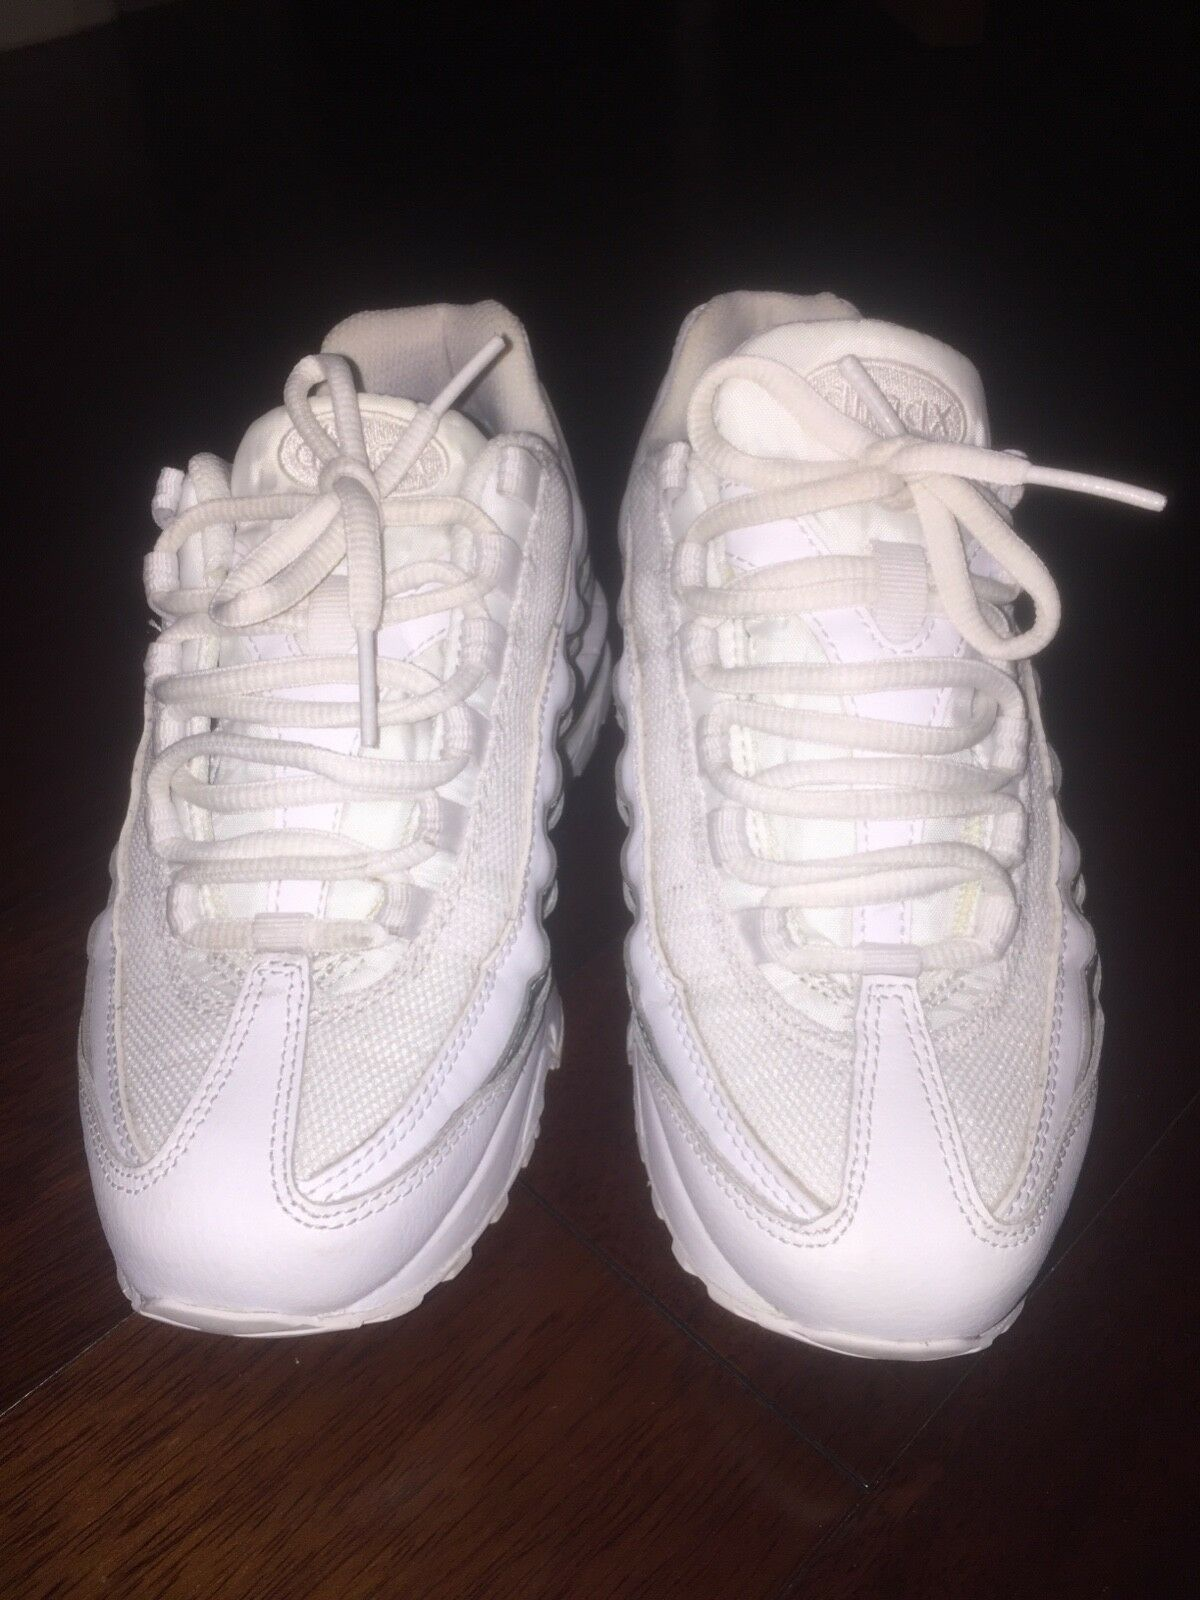 nike air max 95 size 4y, 6 woman - image 2